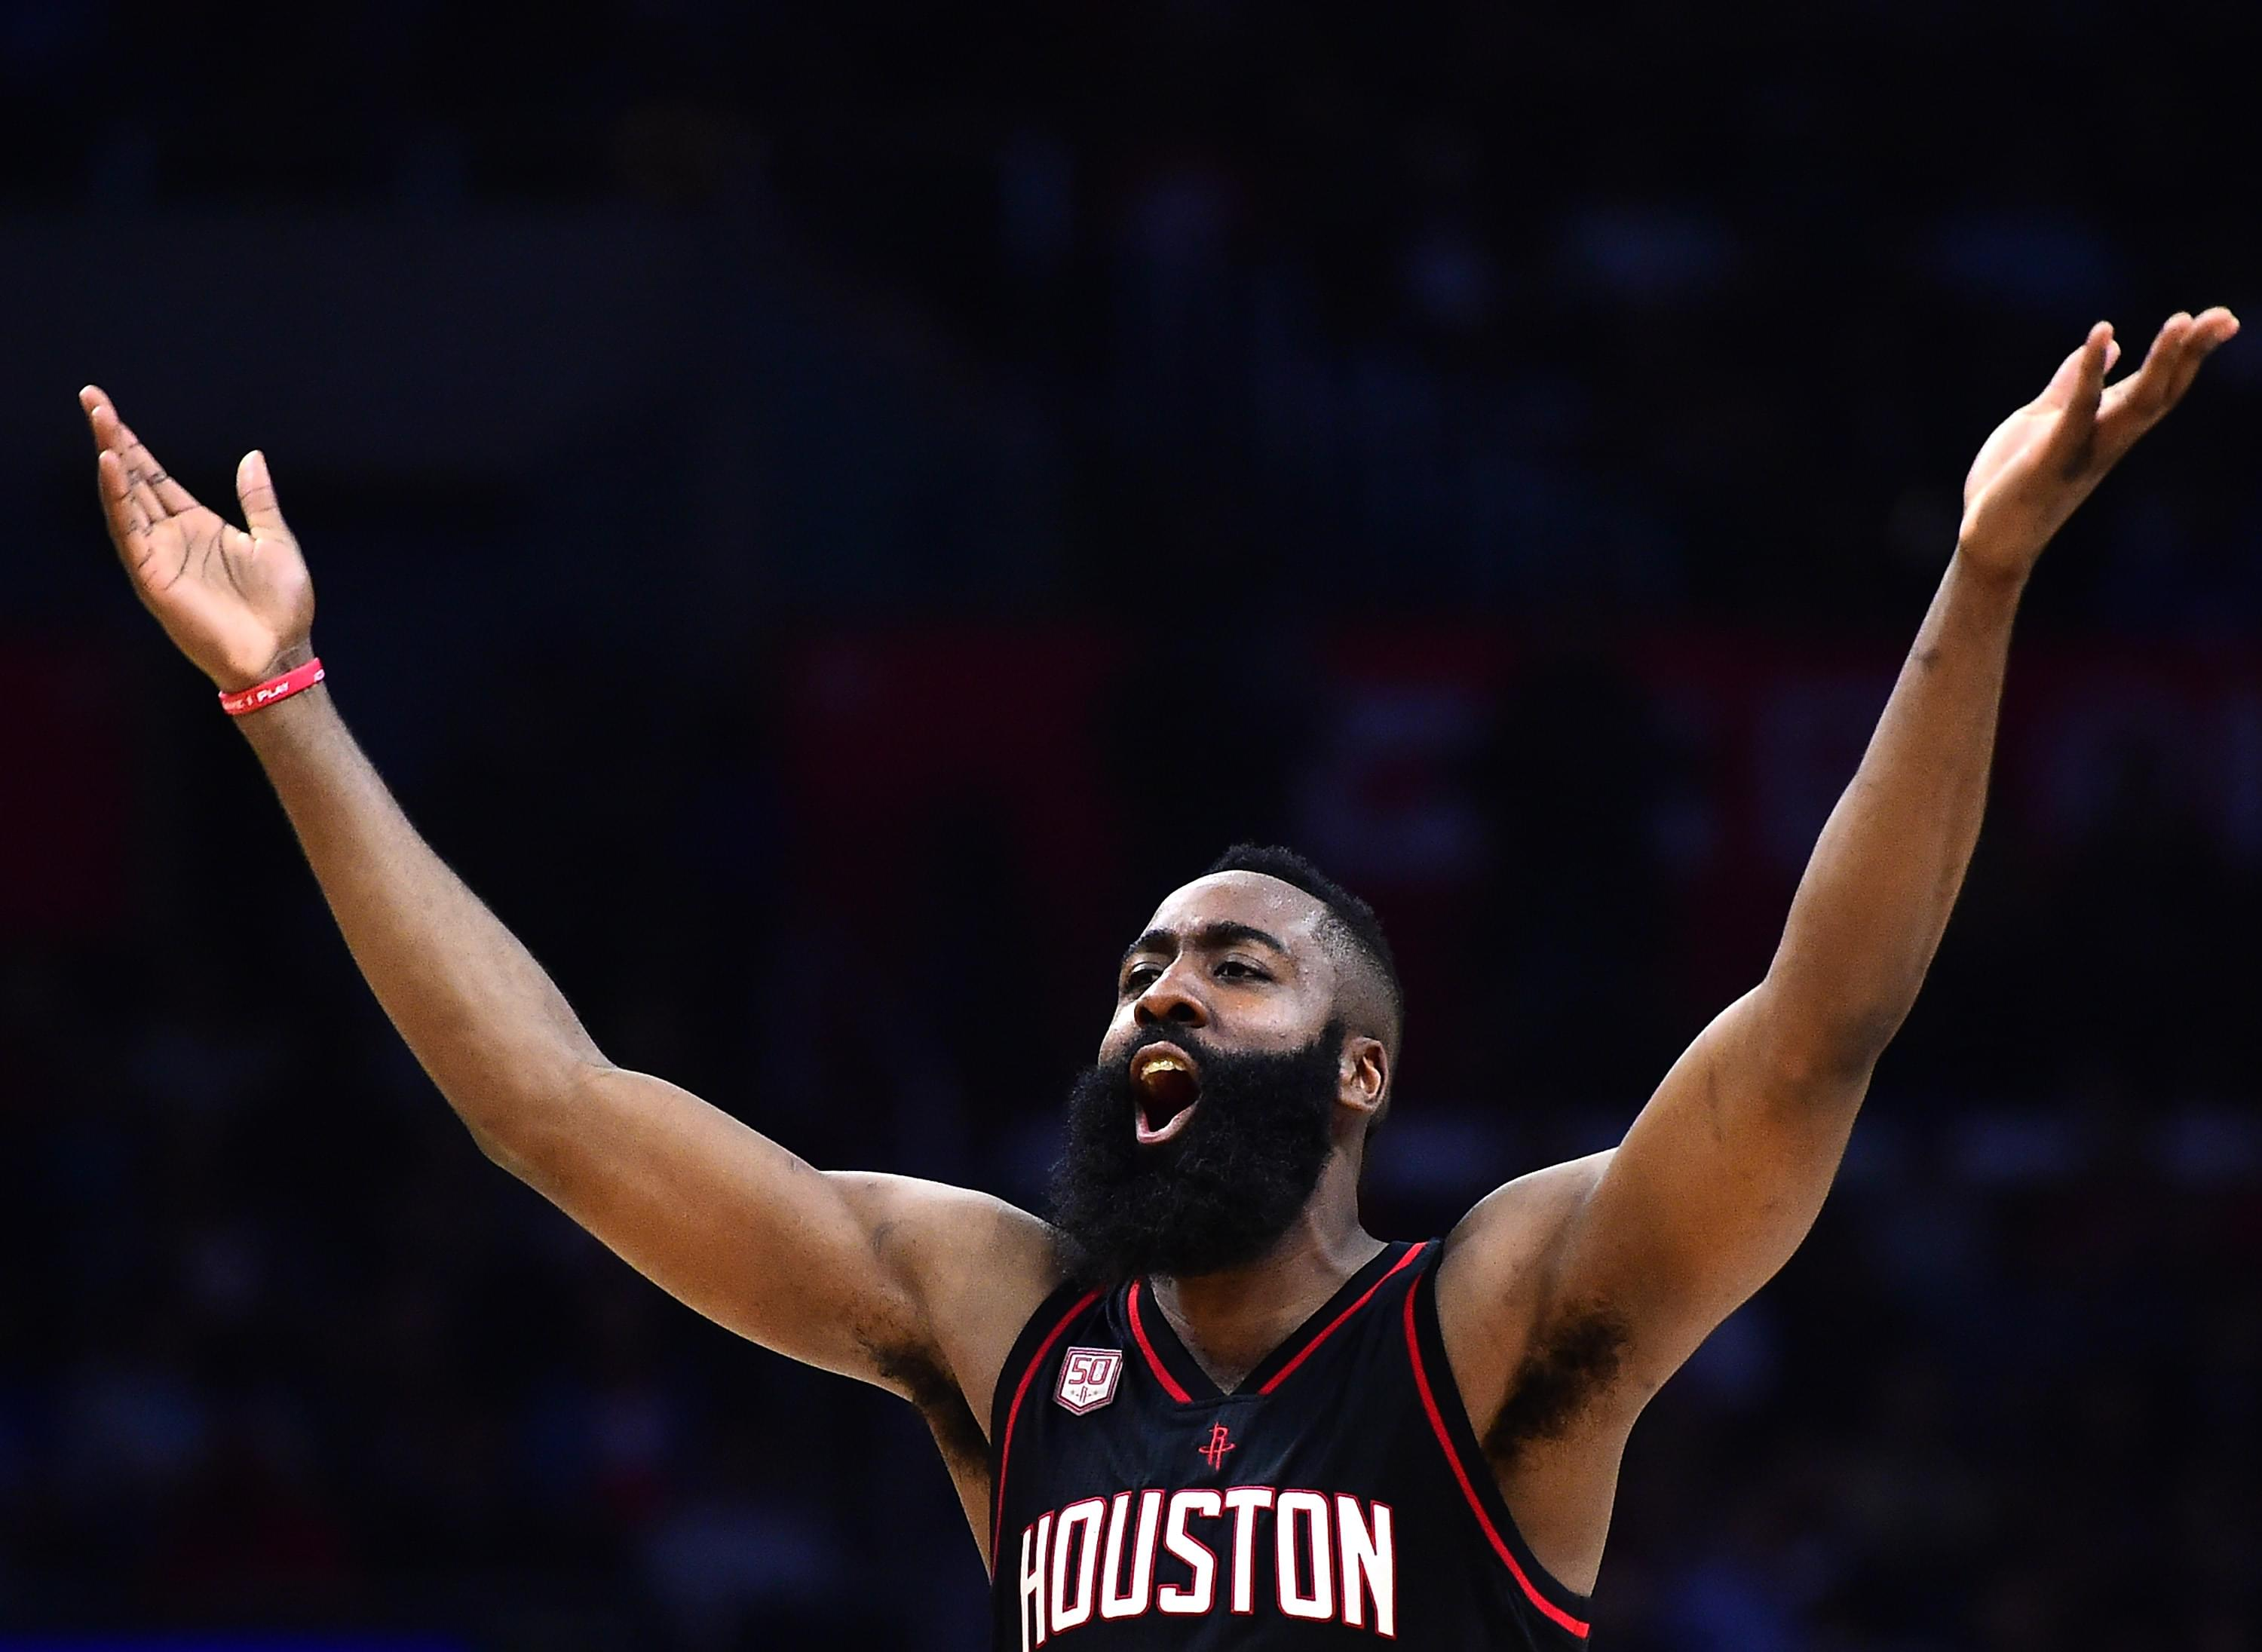 Golden State Warriors contra Houston Rockets: Una vista previa de las Finales de la Conferencia Oeste